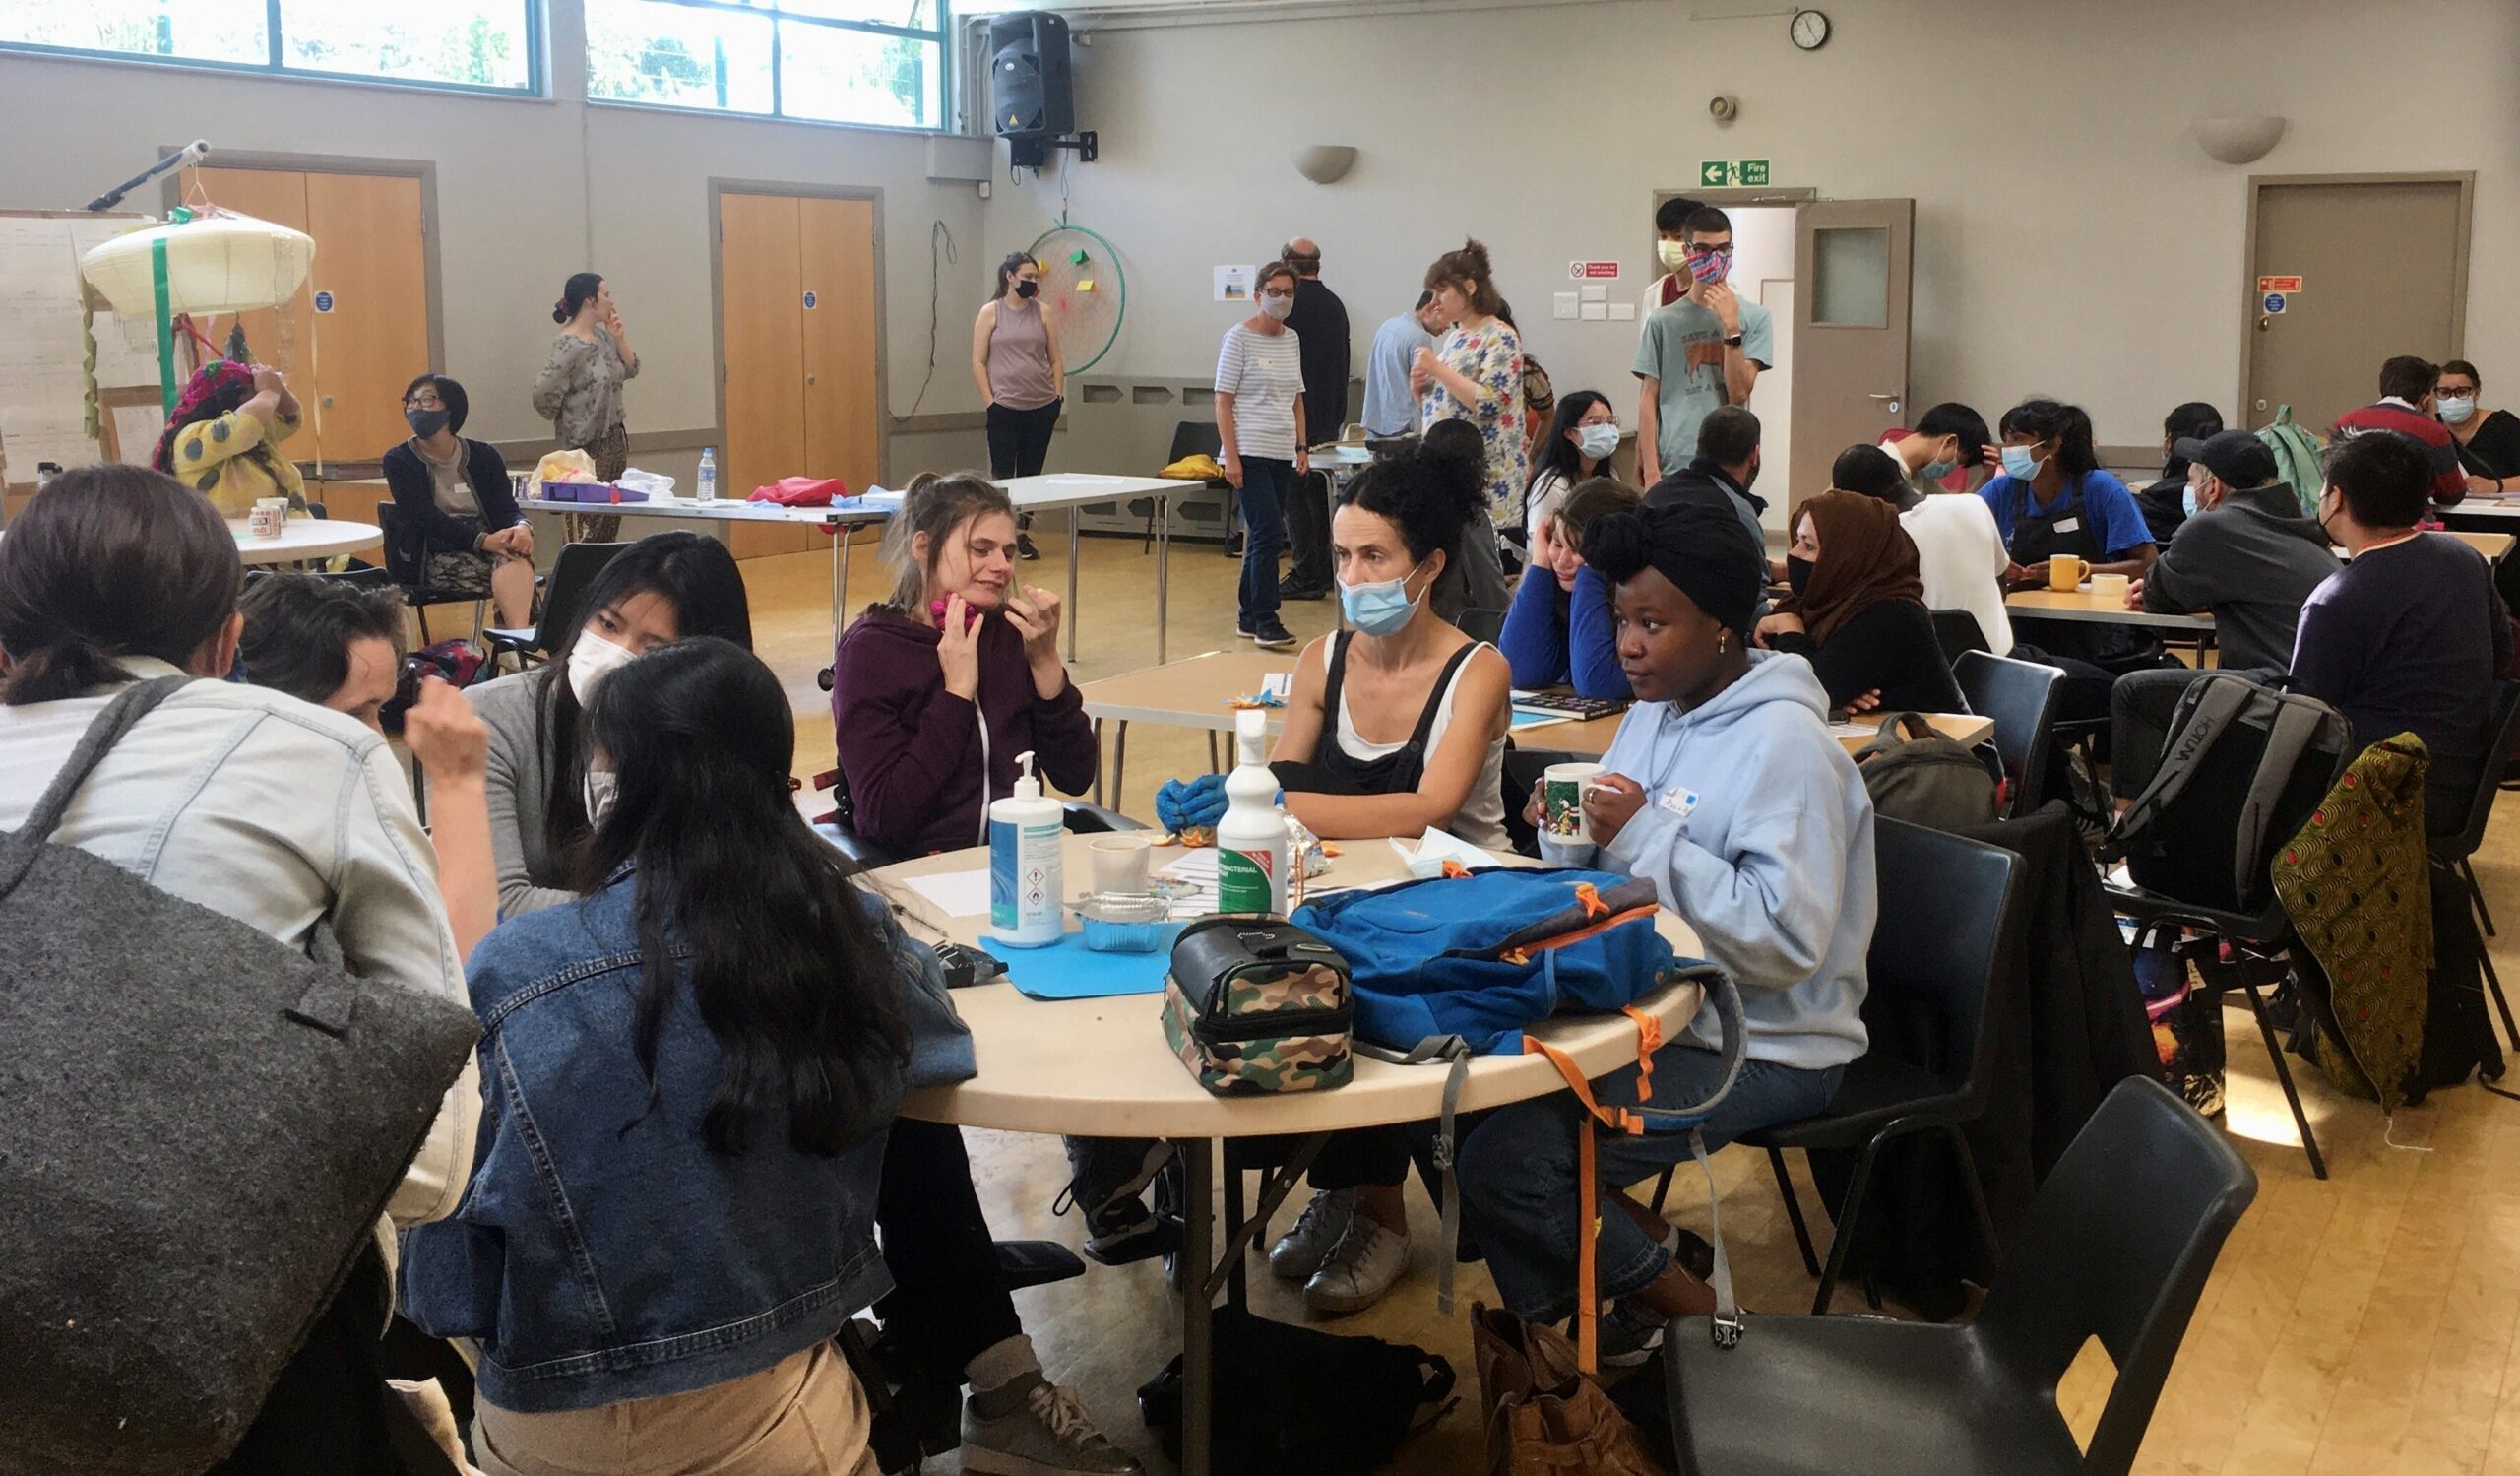 Group scene in the main hall of Hornsey Vale community centre